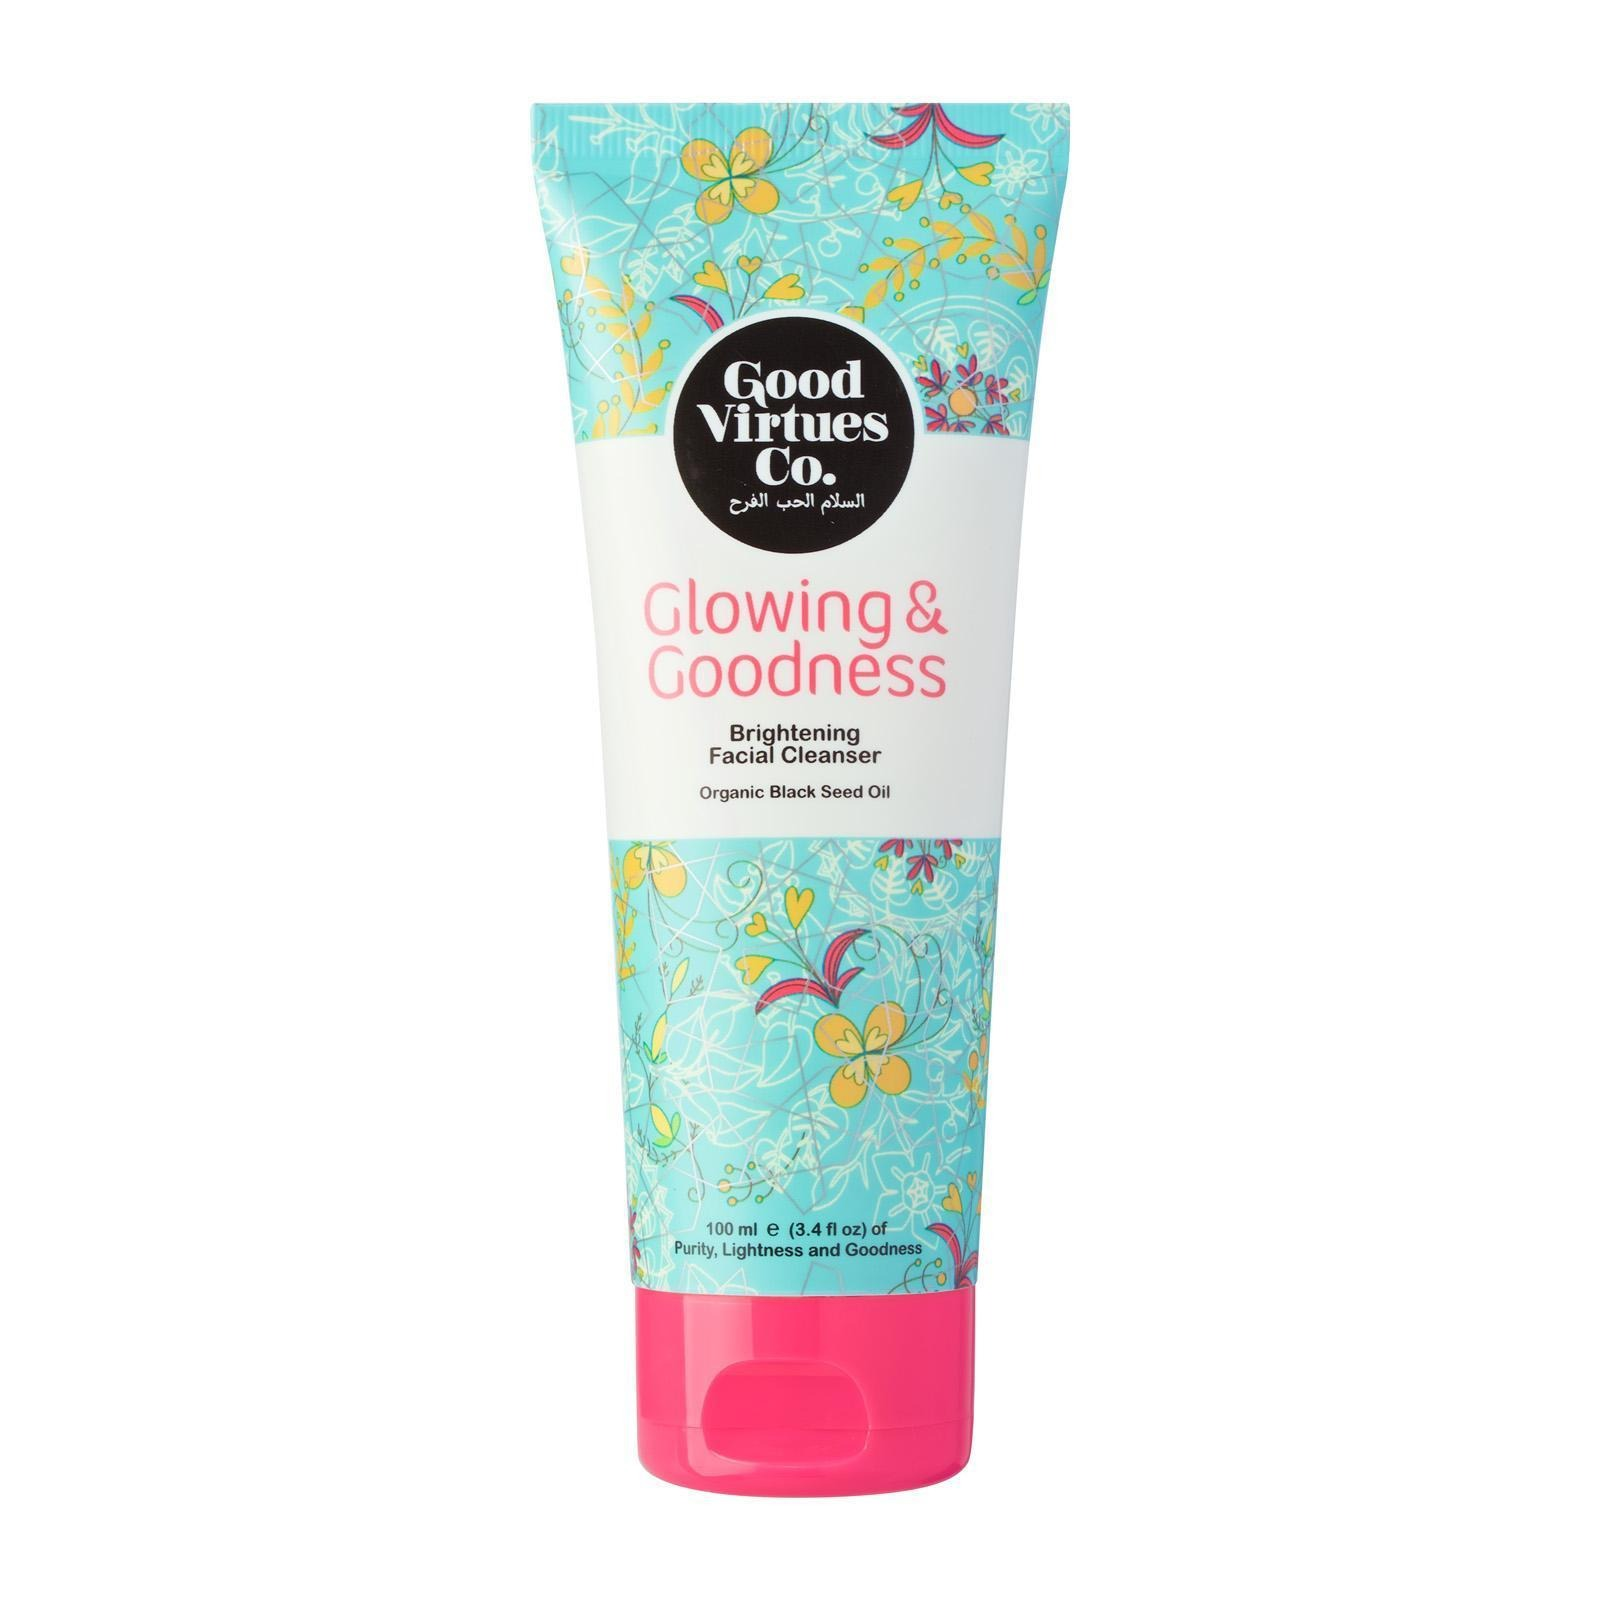 Good Virtues Co. Glowing & Goodness Brightening Facial Cleanser